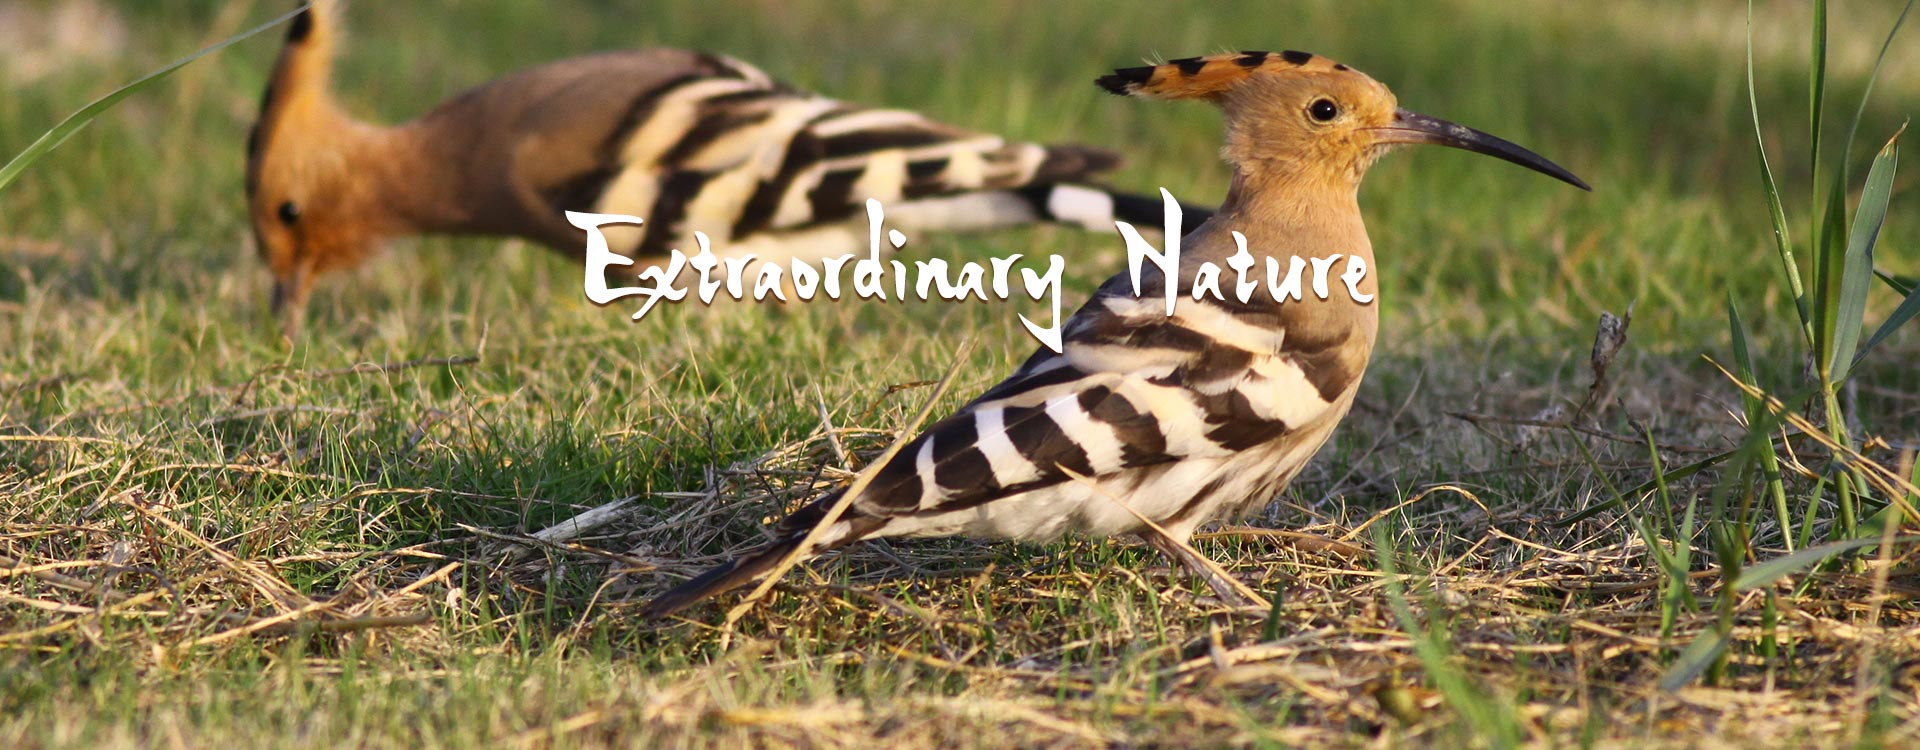 Extraordinary Nature